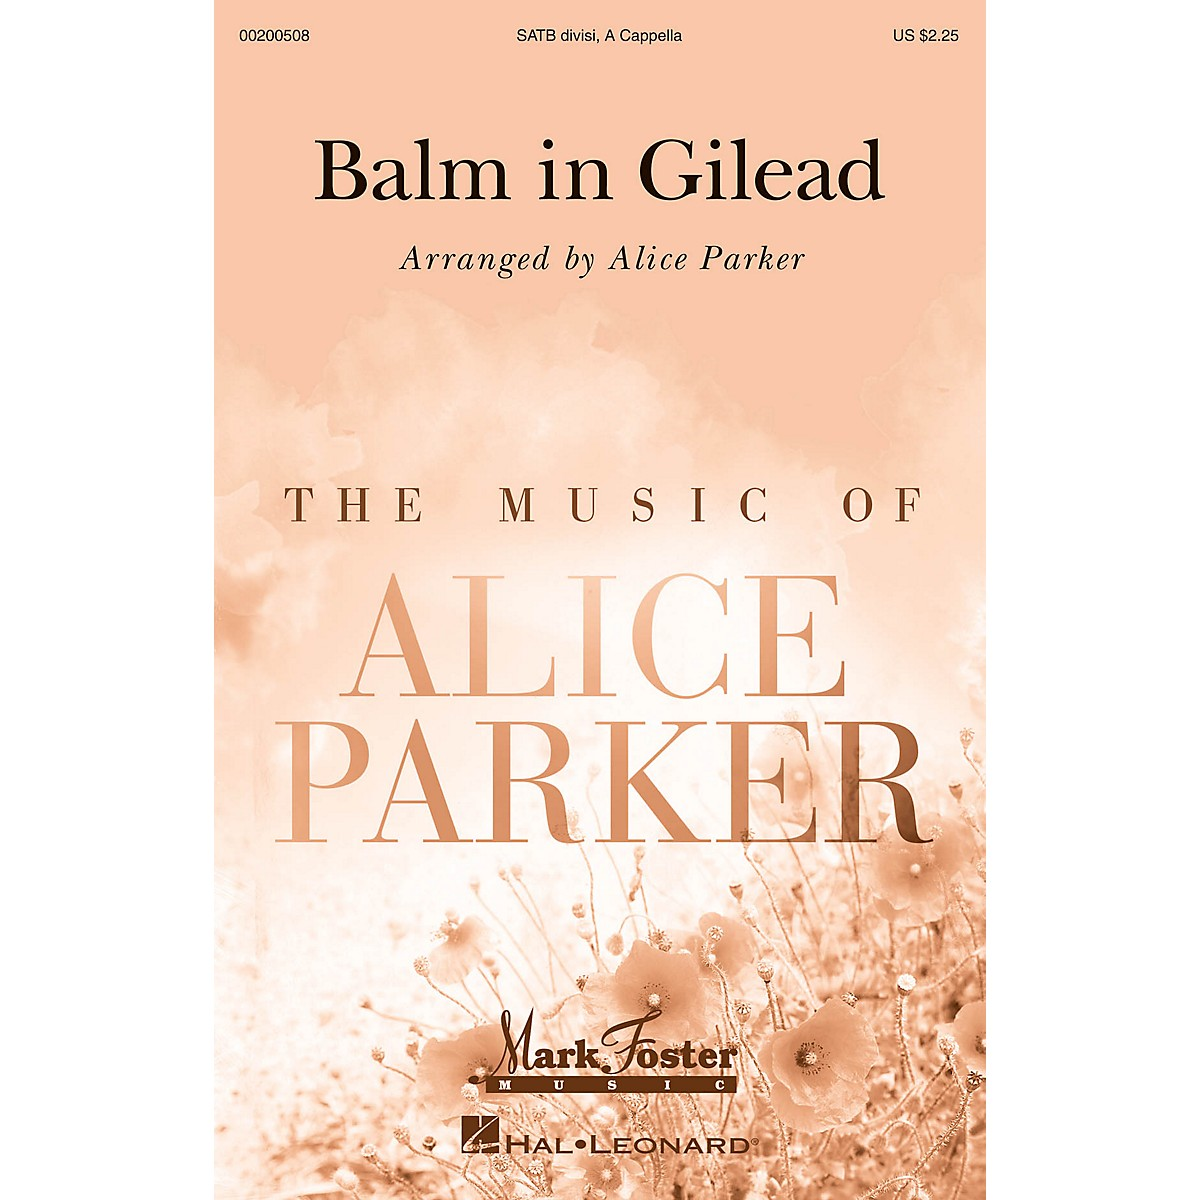 Mark Foster Balm in Gilead (Mark Foster) SATB with Solo arranged by Alice Parker